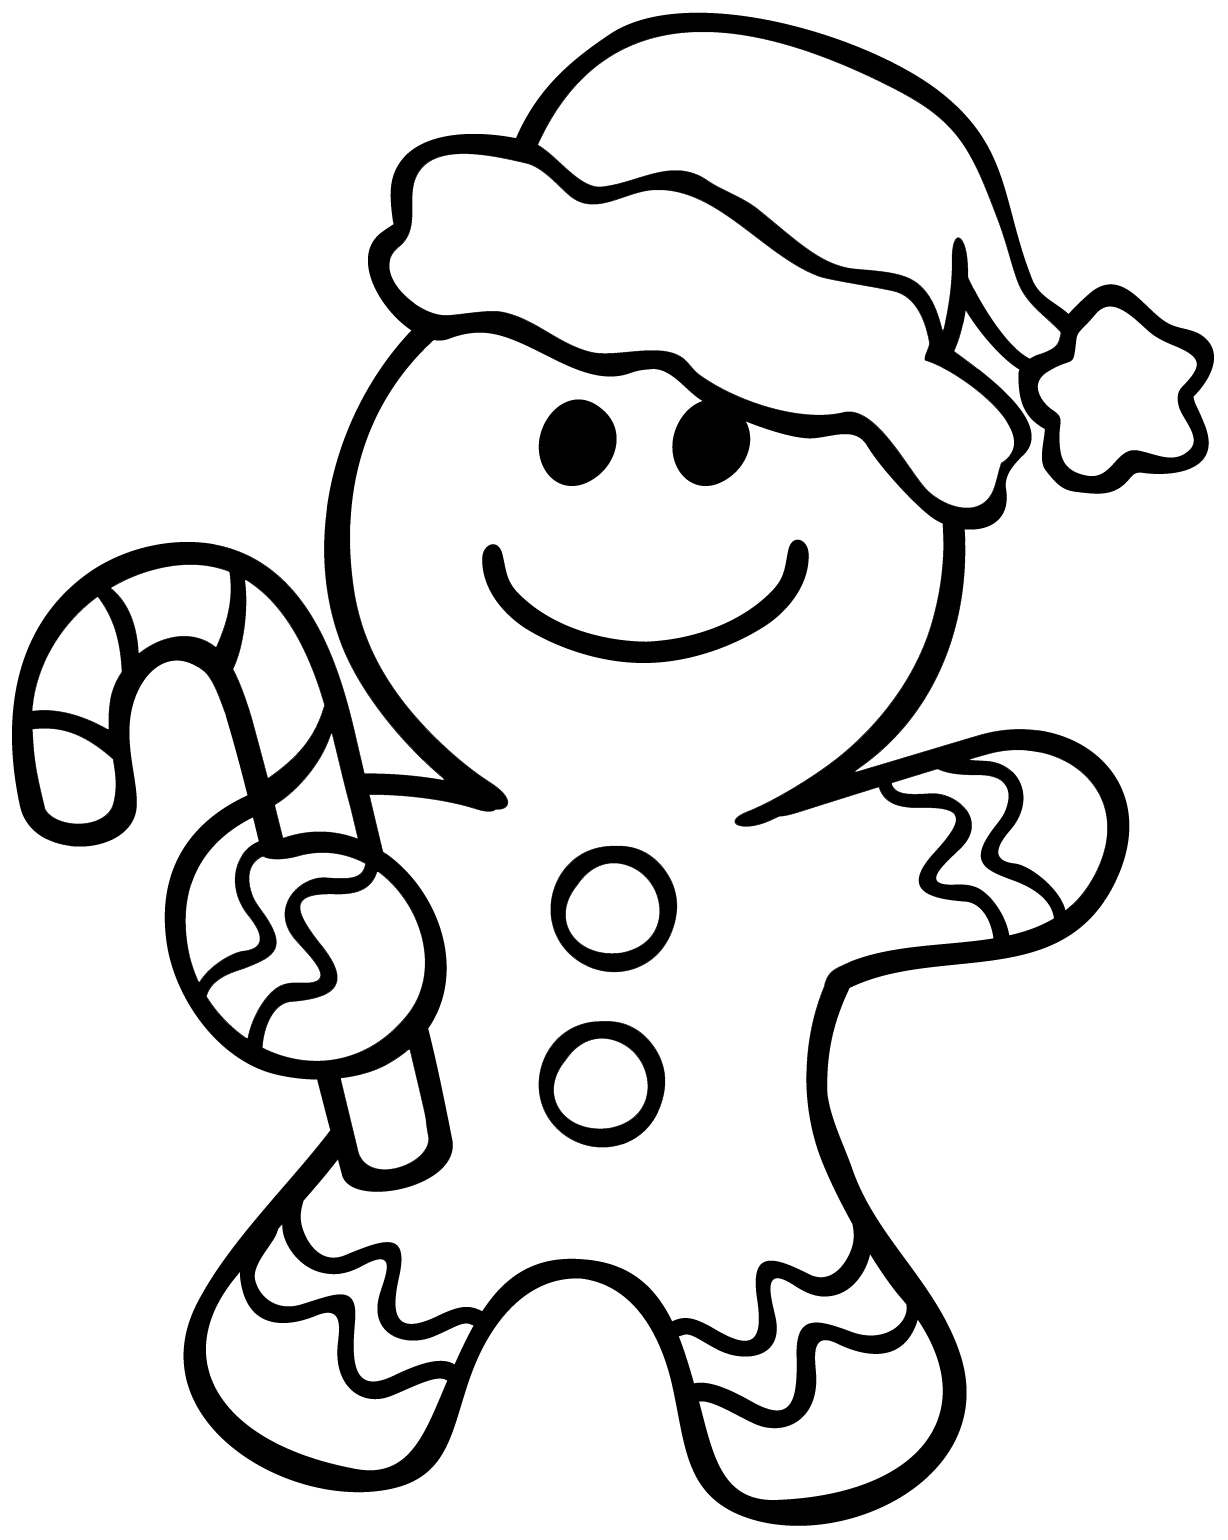 gingerbread man coloring pictures free printable gingerbread man coloring pages for kids pictures gingerbread coloring man